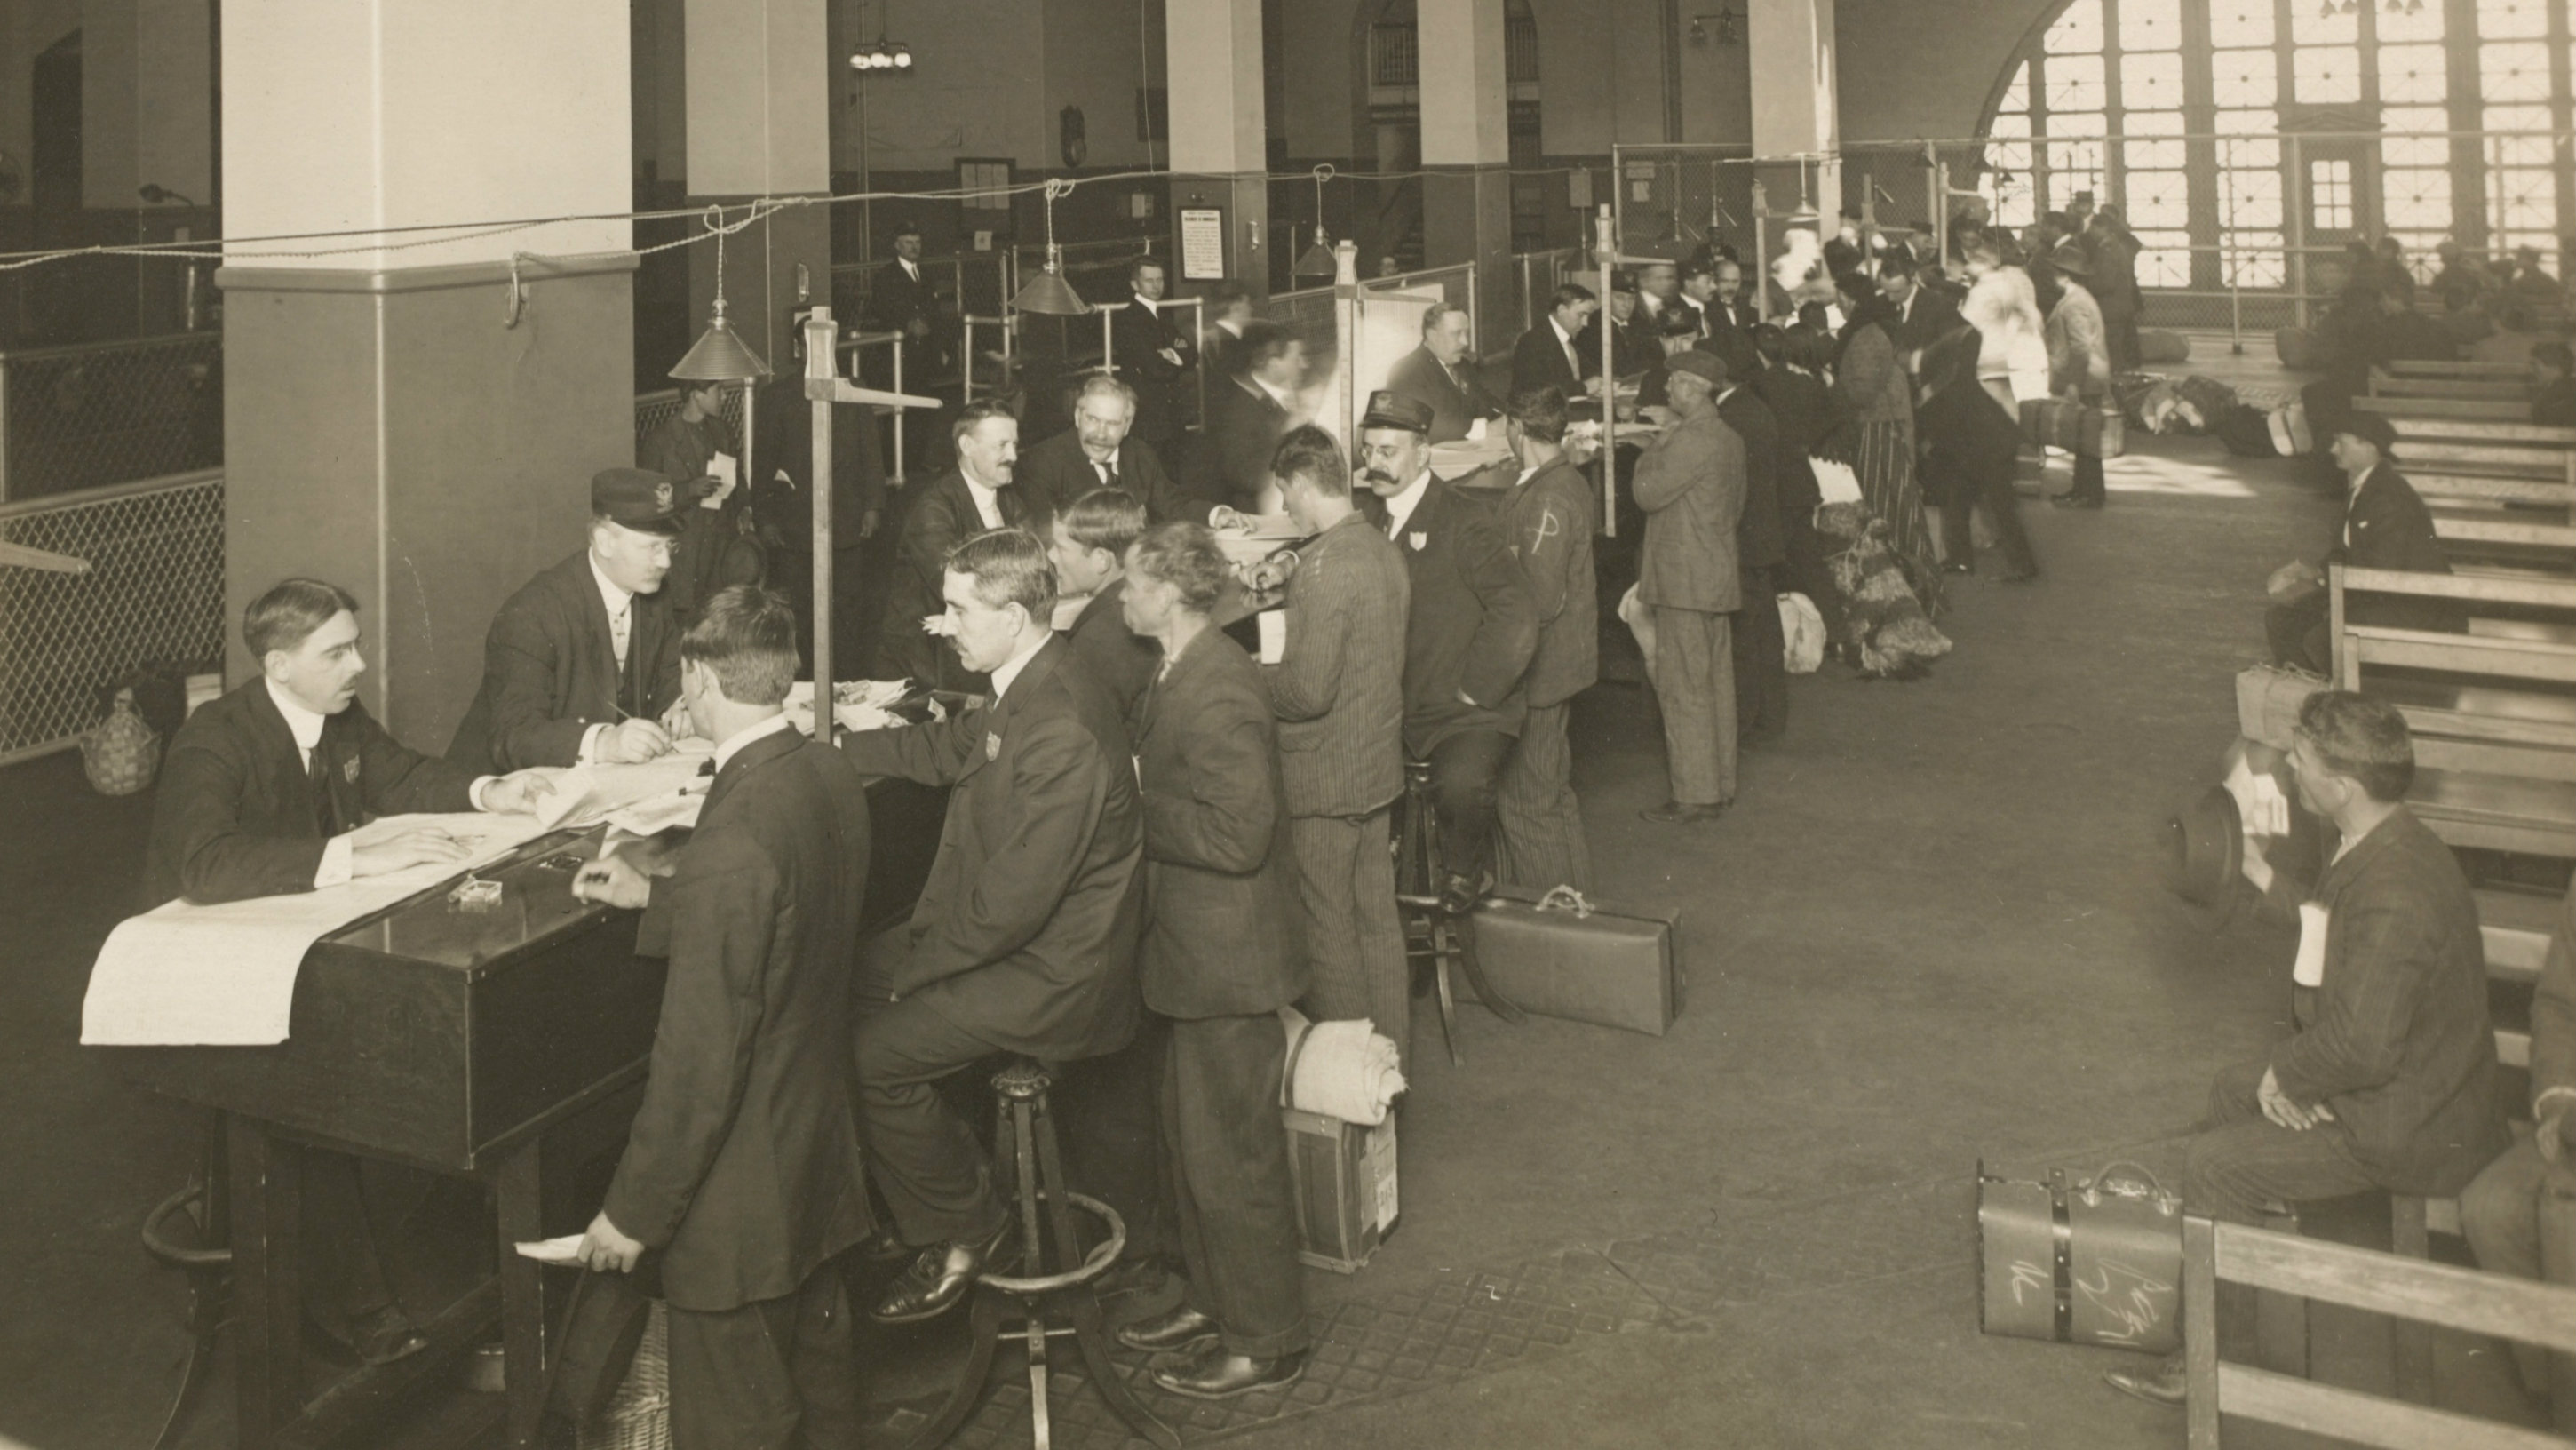 Immigrants being registered at Ellis Island.